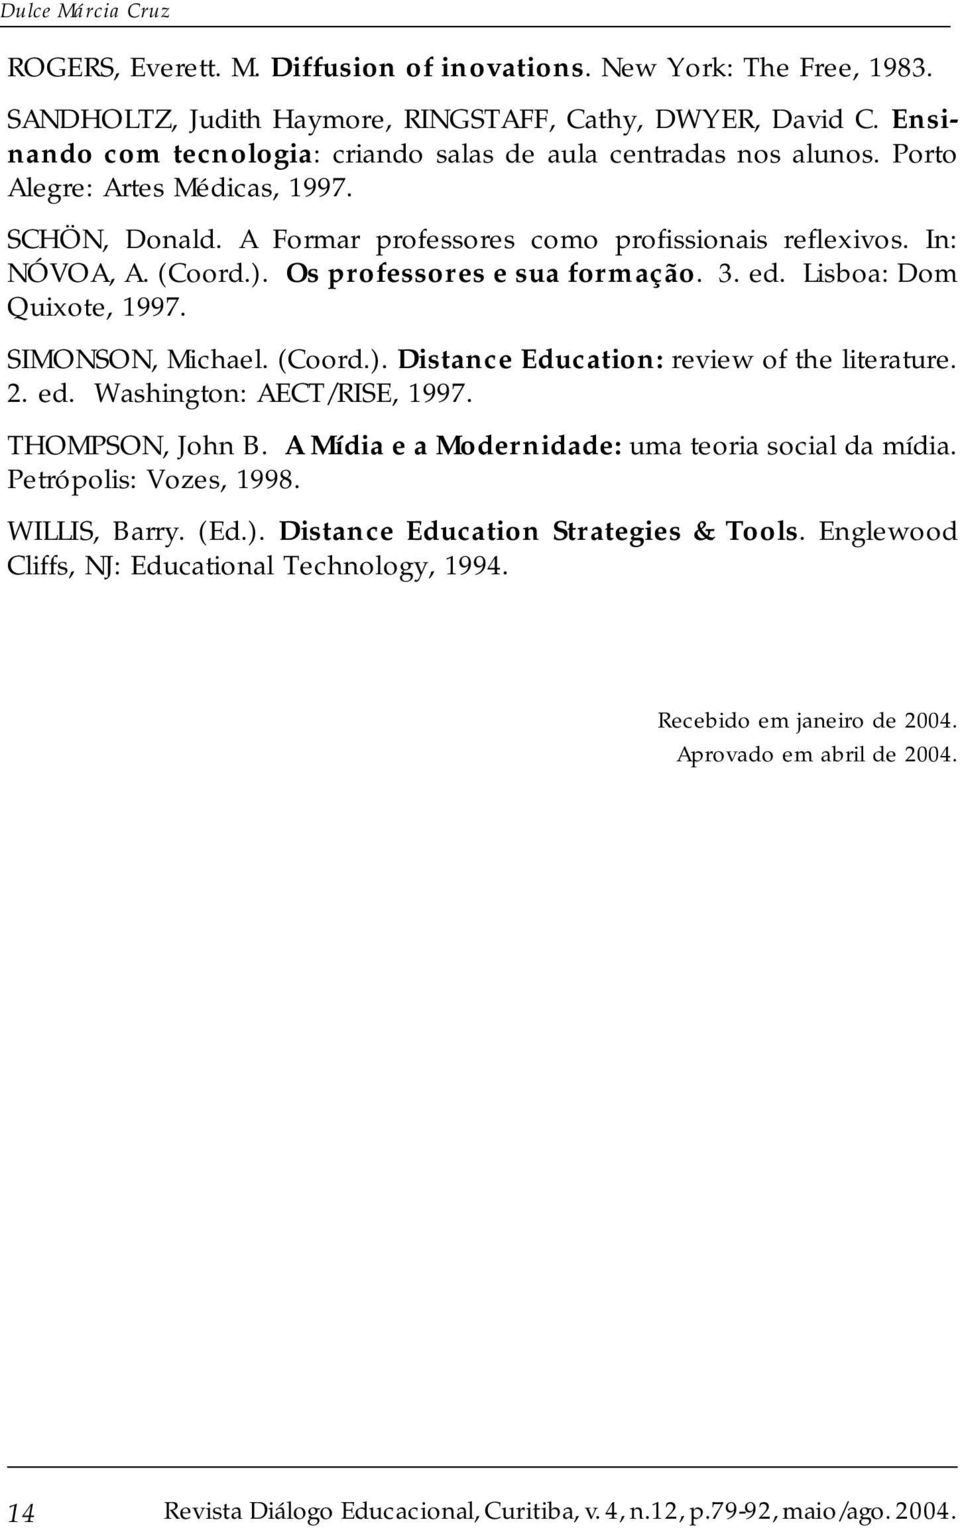 Os professores e sua formação. 3. ed. Lisboa: Dom Quixote, 1997. SIMONSON, Michael. (Coord.). Distance Education: review of the literature. 2. ed. Washington: AECT/RISE, 1997. THOMPSON, John B.